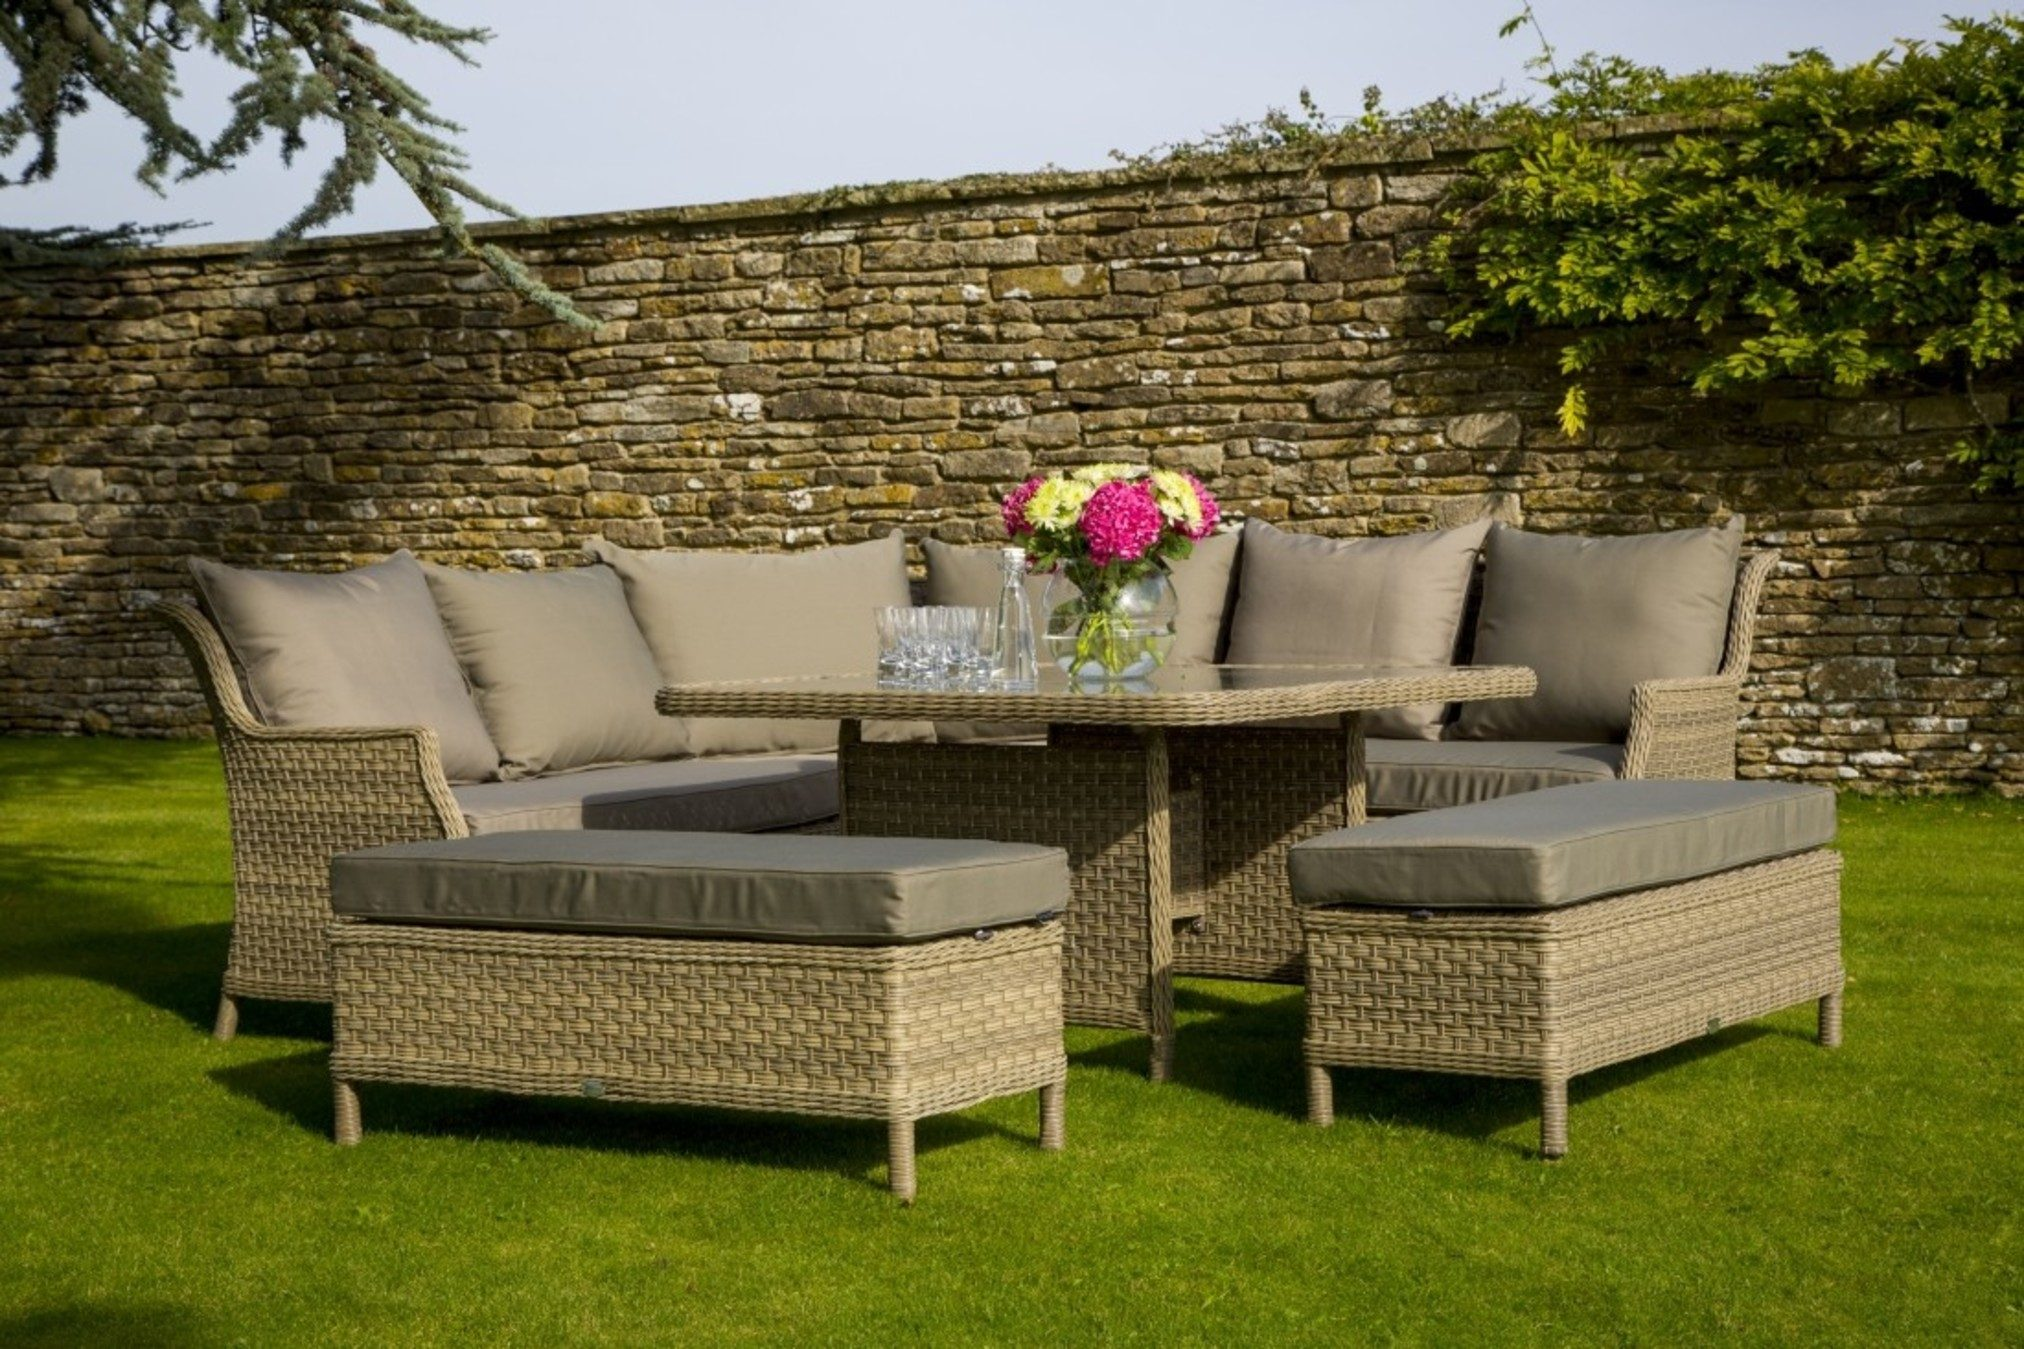 Other important factors to consider outdoor garden furniture